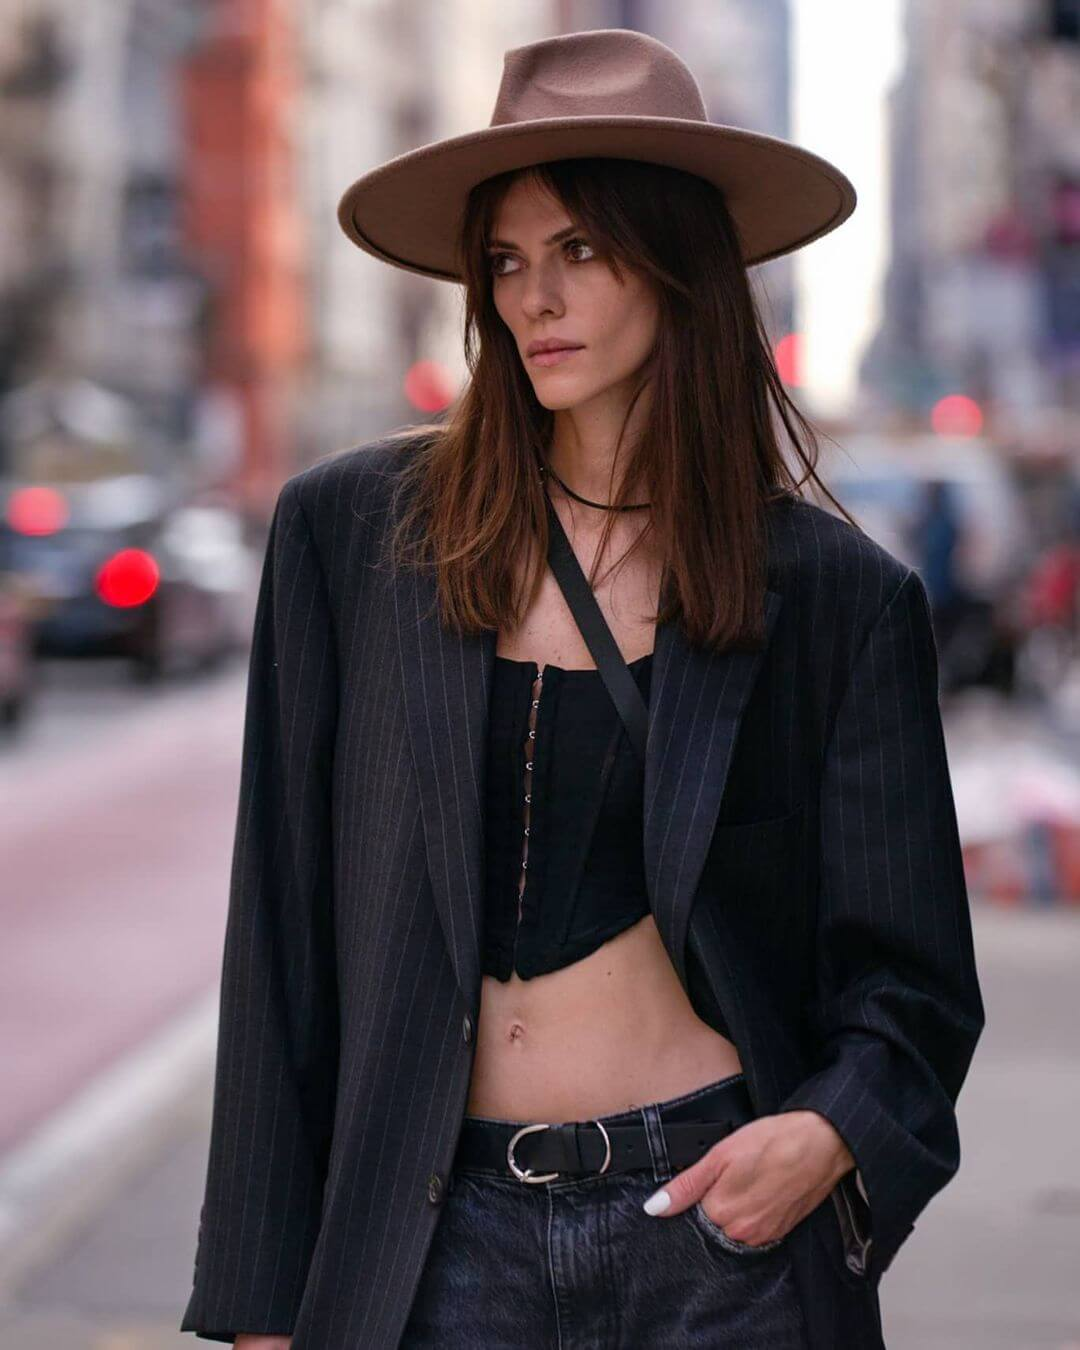 What to Look for With Street Style In 2021